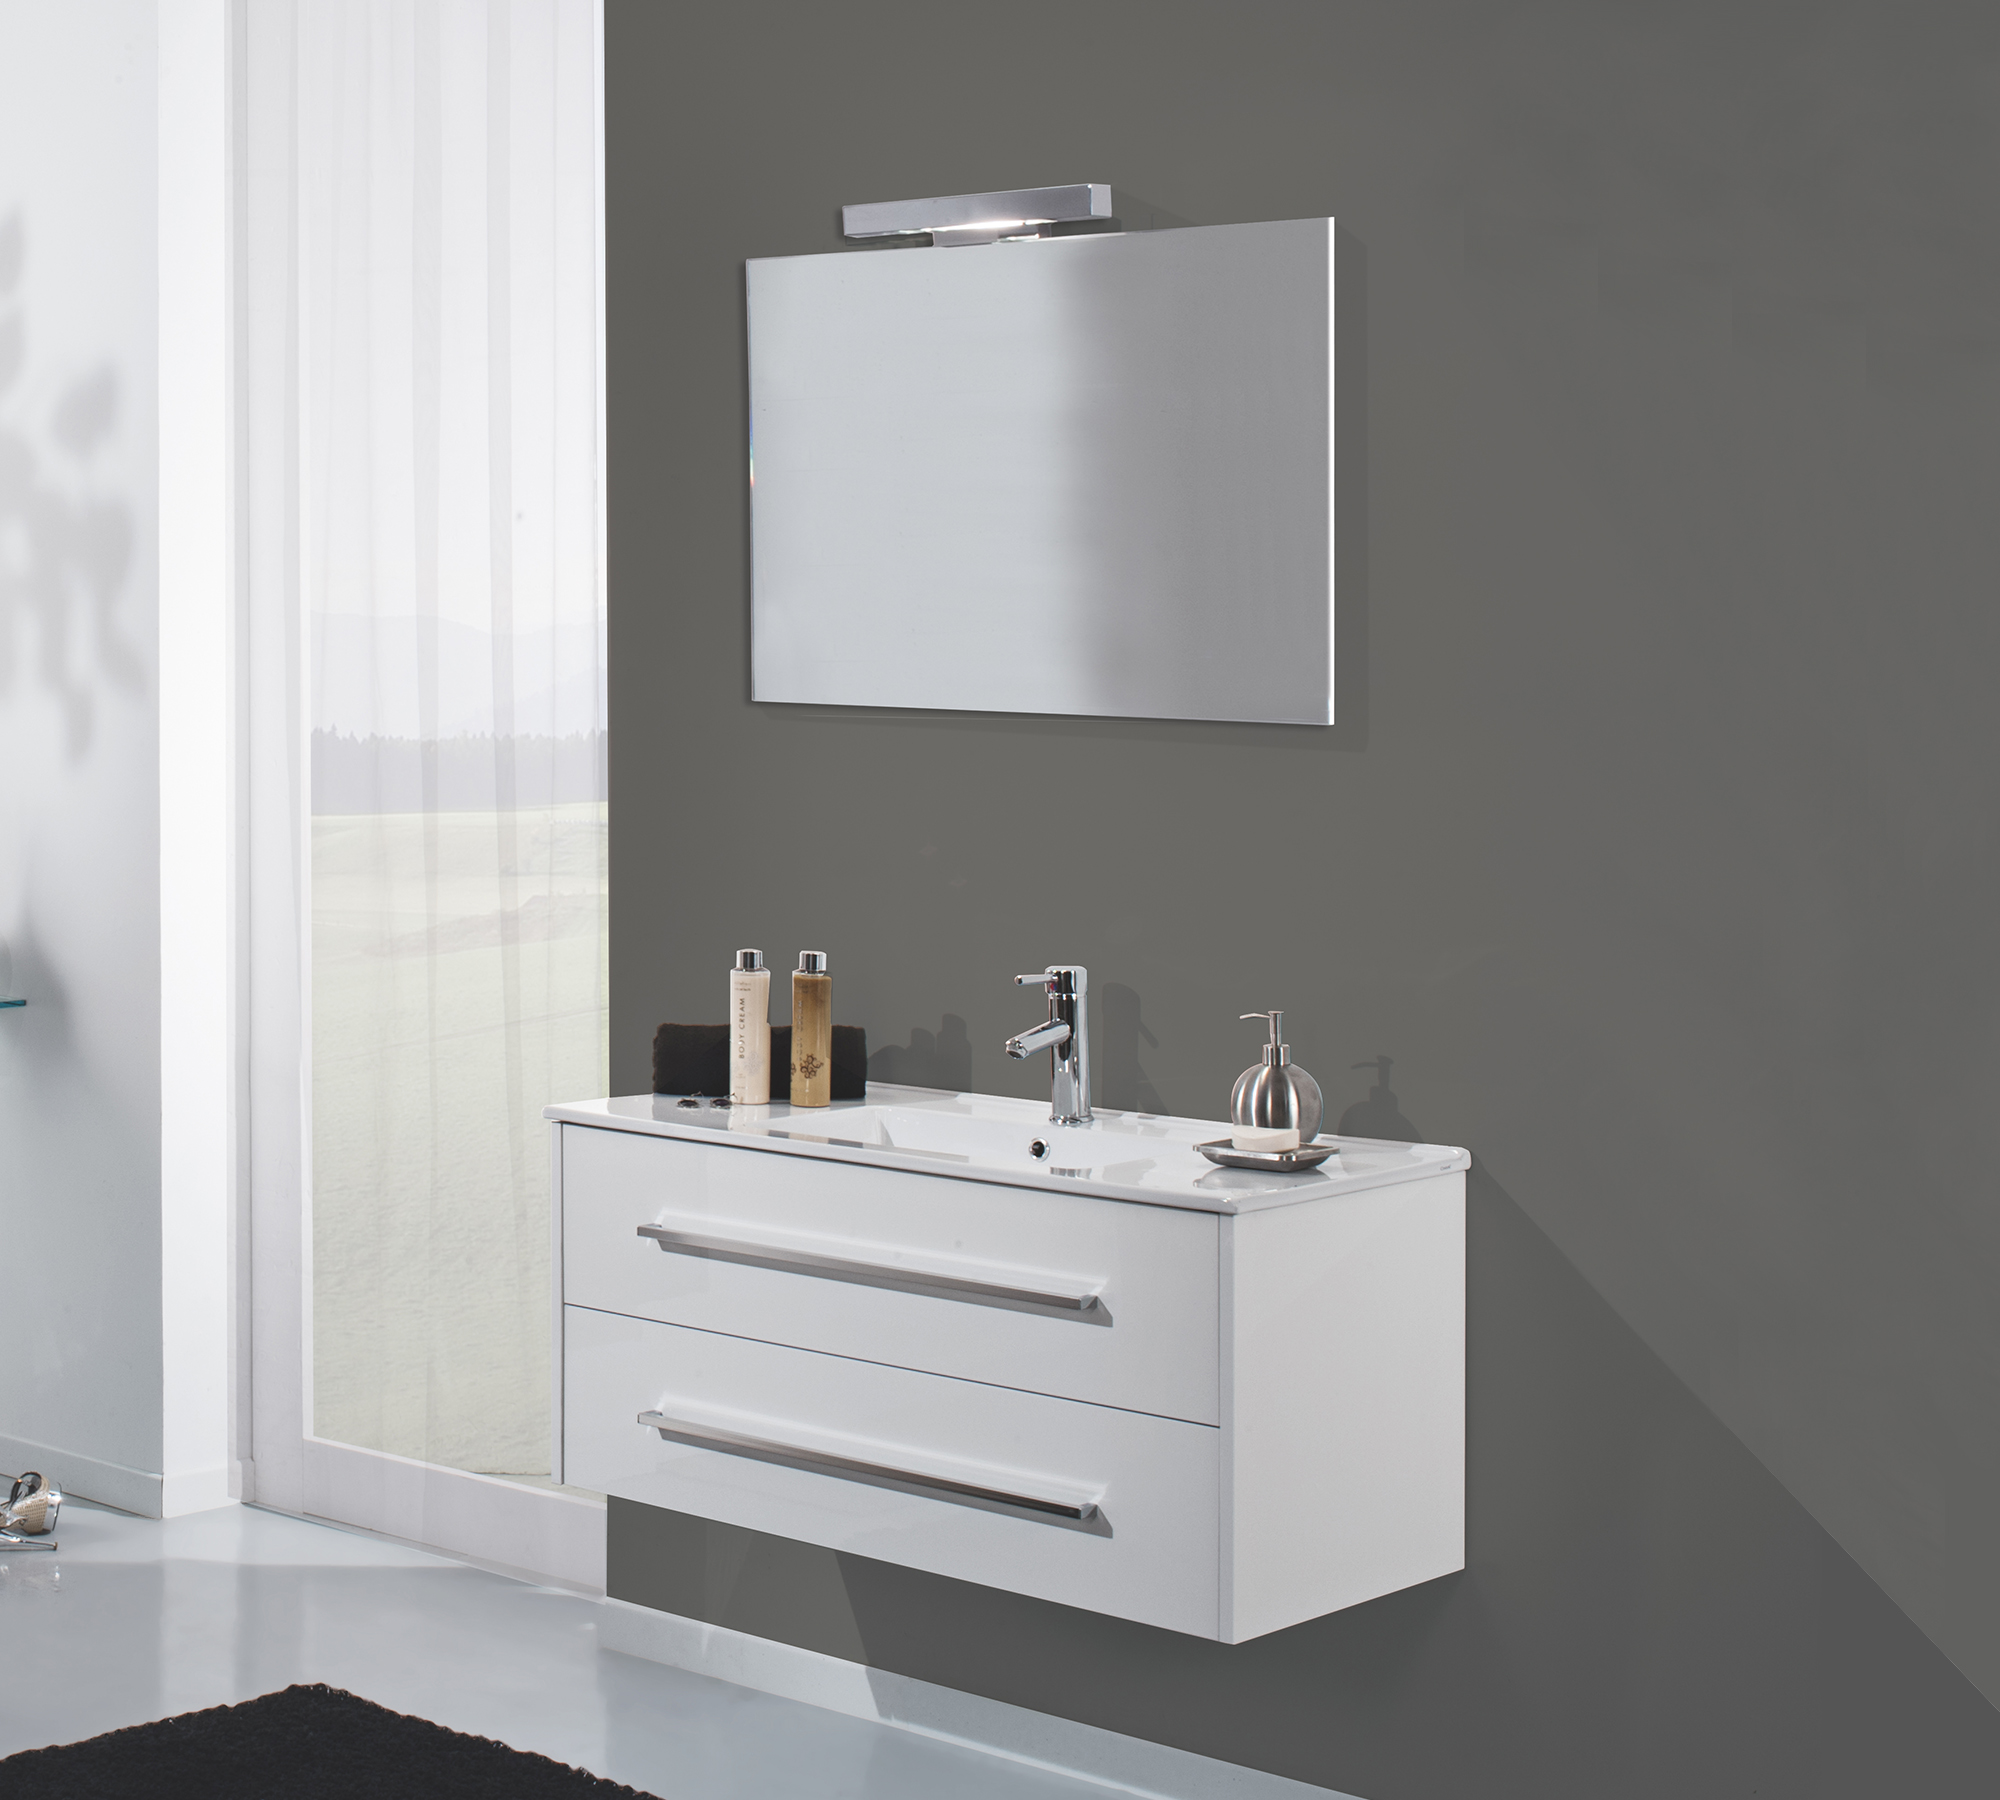 Arredo bagno moderno bianco duzzle for Consolle leroy merlin